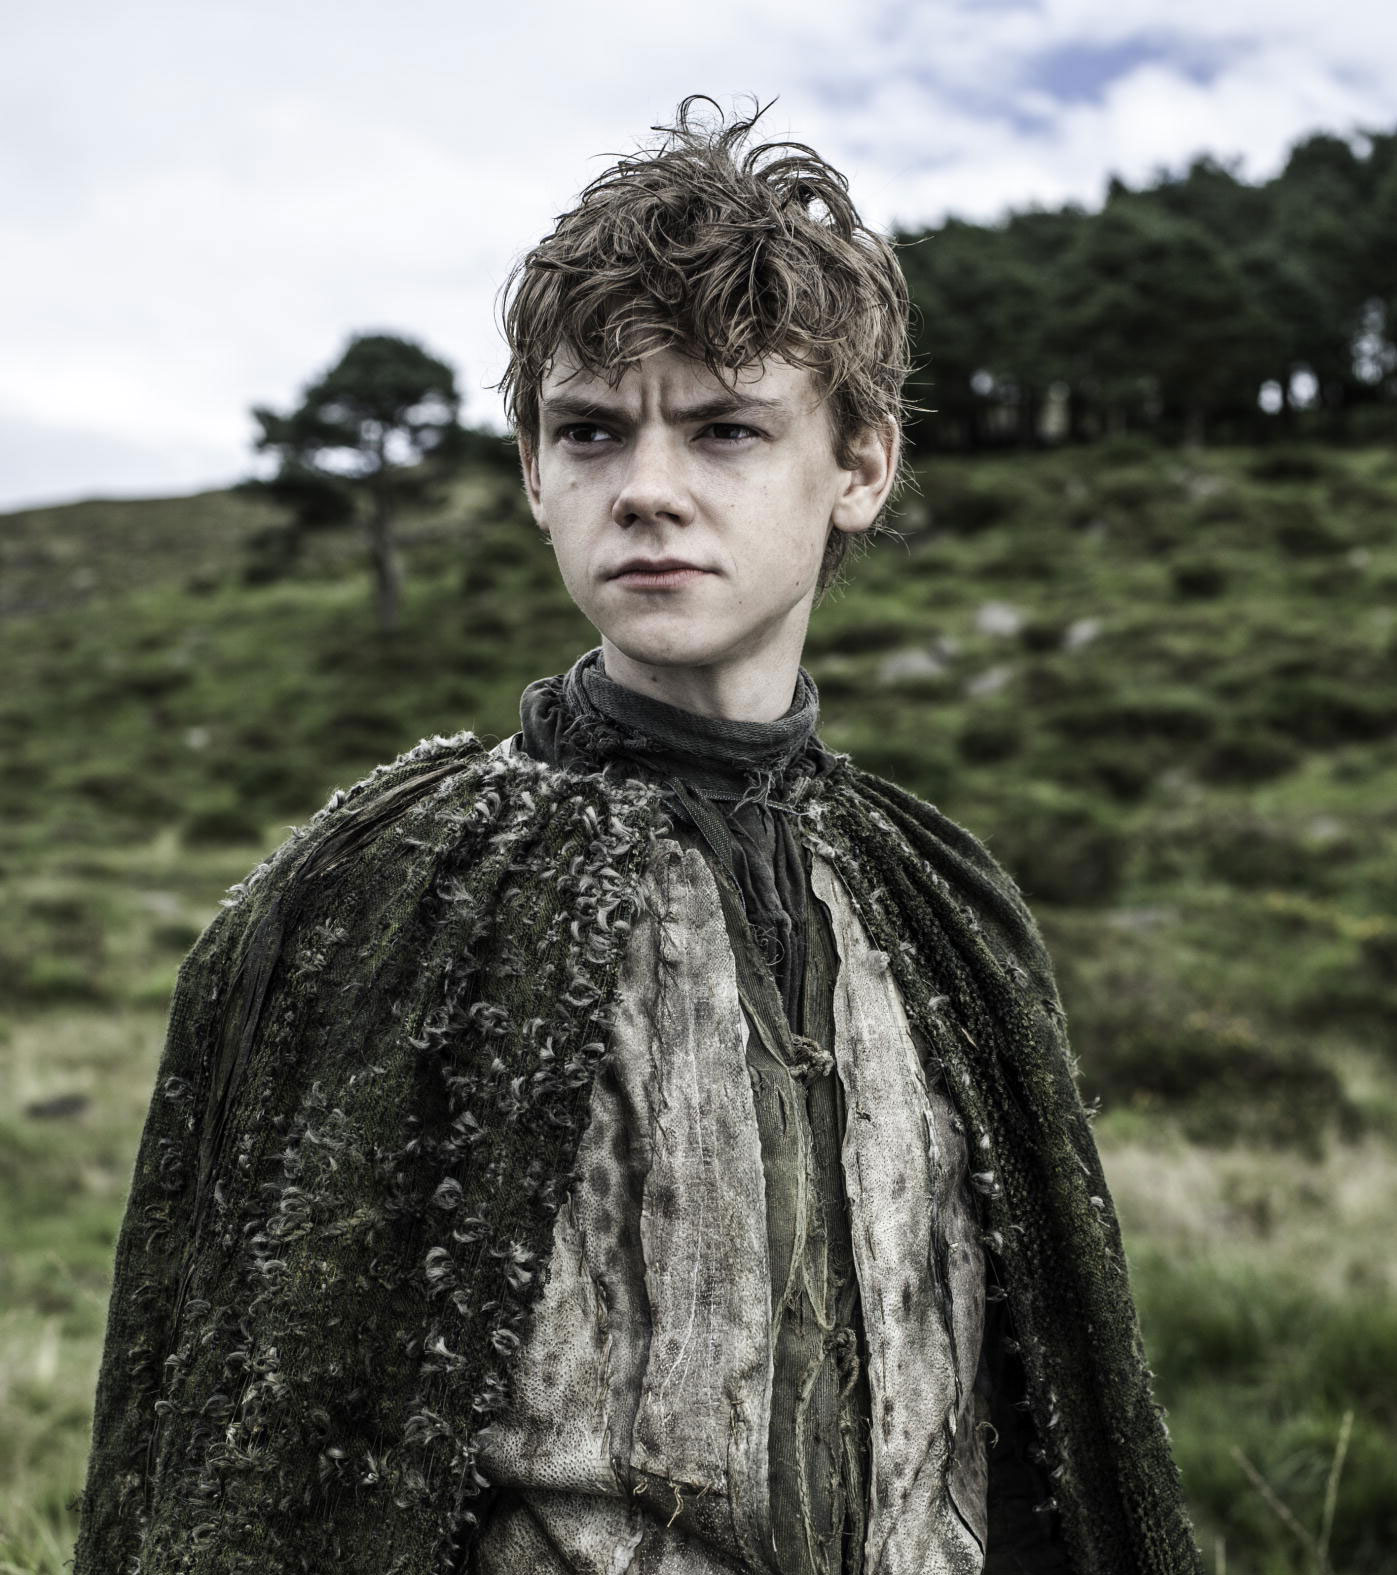 Jojen Reed joined Bran Stark and his party as they headed north but was killed by Wights (creatures above the wall) in the Season Four finale. He was only on the show for a short while but we liked him for helping Bran get to his destination.